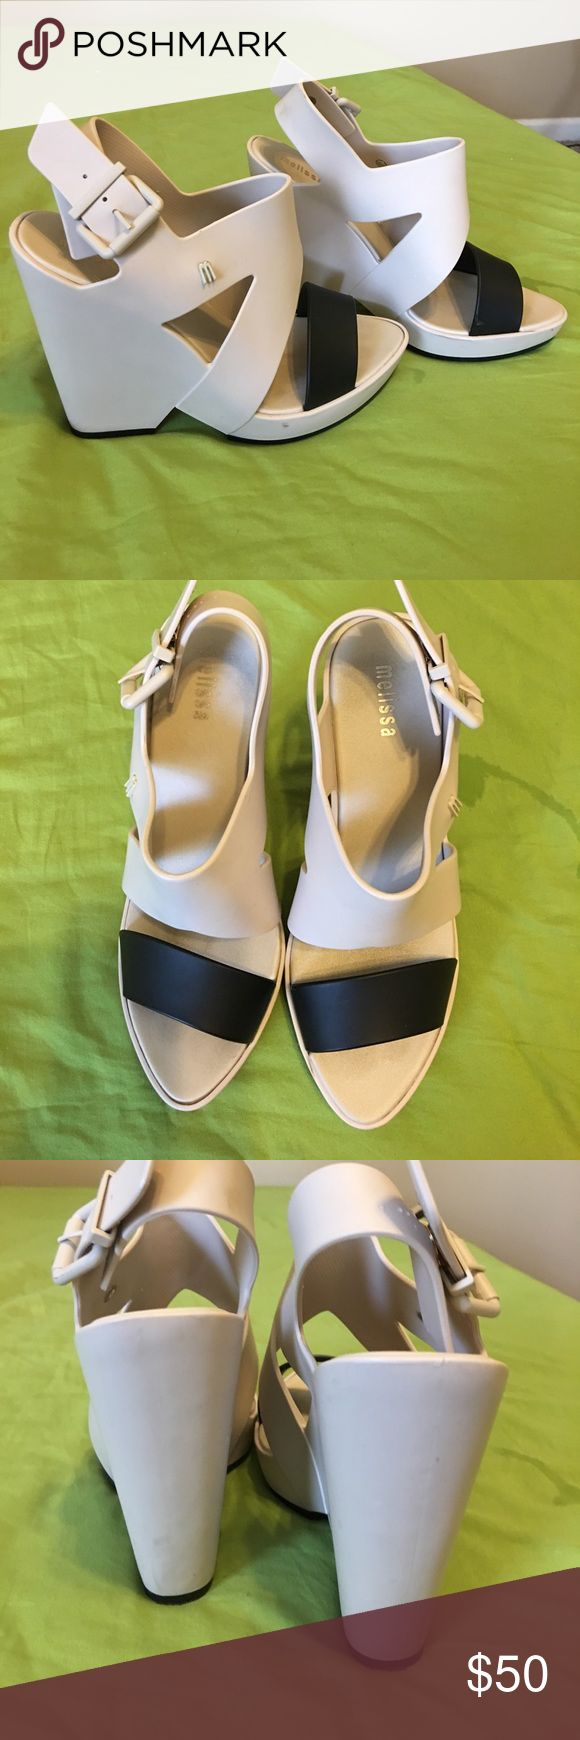 Melissa Sandals Made in Brazil. Very good condition. Melissa Shoes Sandals